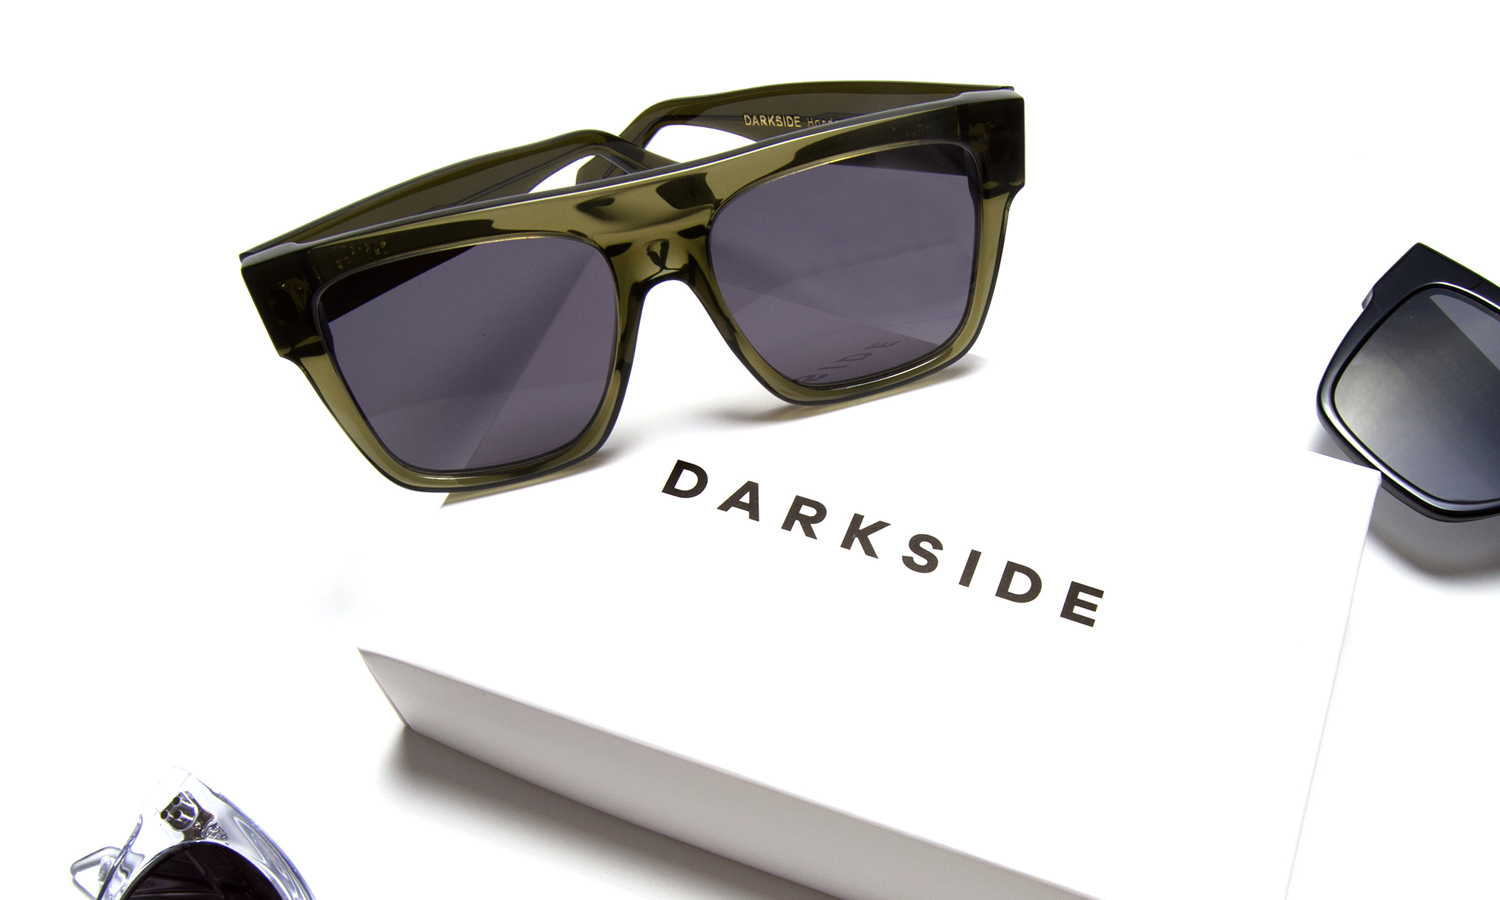 Darkside Proteus Green Sunglasses and box